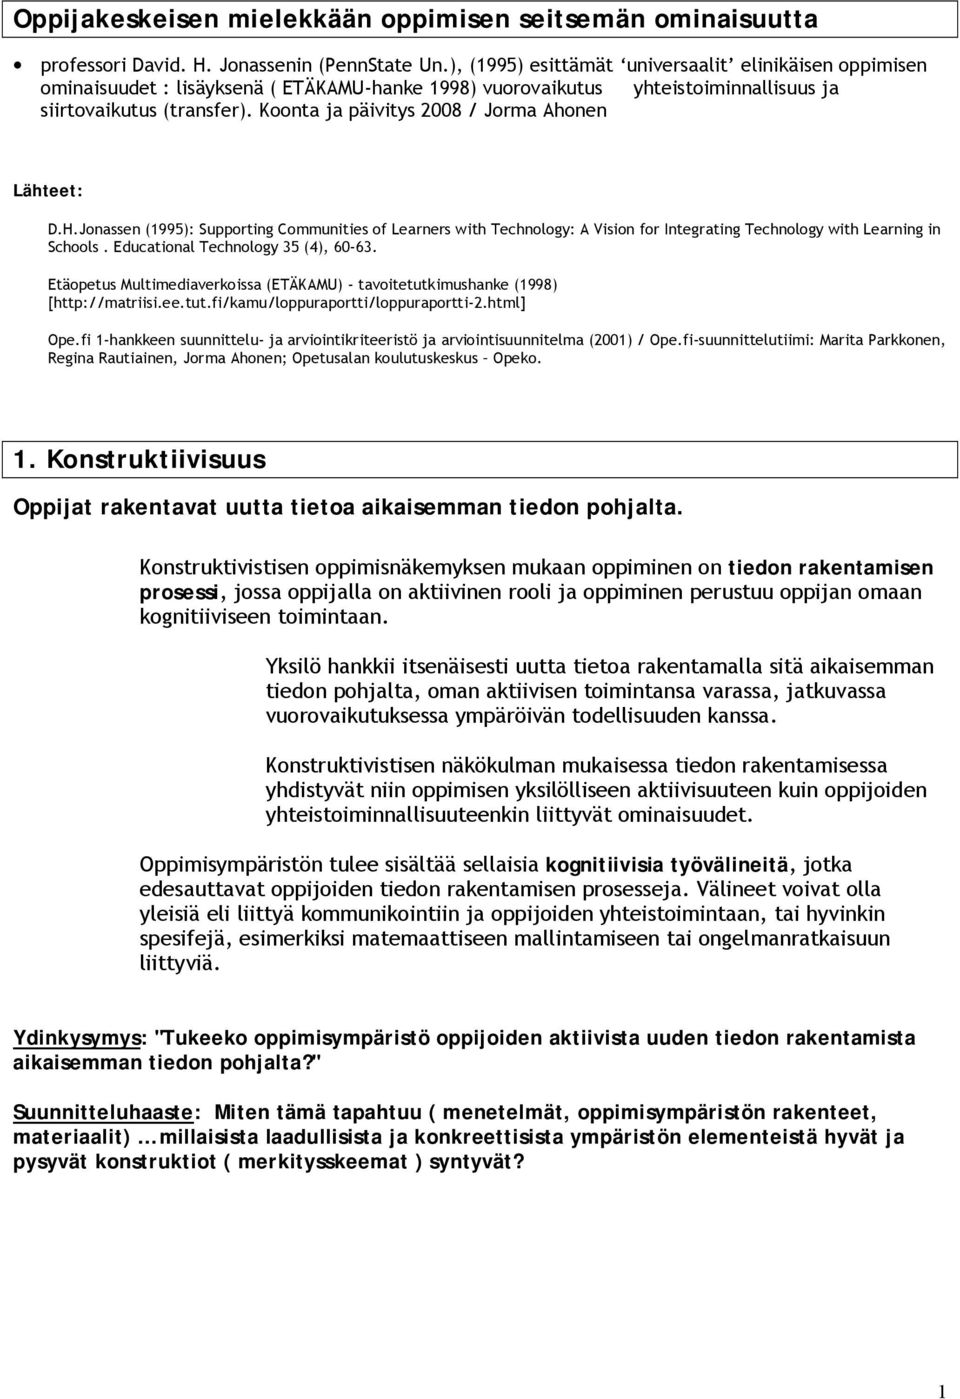 Koonta ja päivitys 2008 / Jorma Ahonen Lähteet: D.H.Jonassen (1995): Supporting Communities of Learners with Technology: A Vision for Integrating Technology with Learning in Schools.